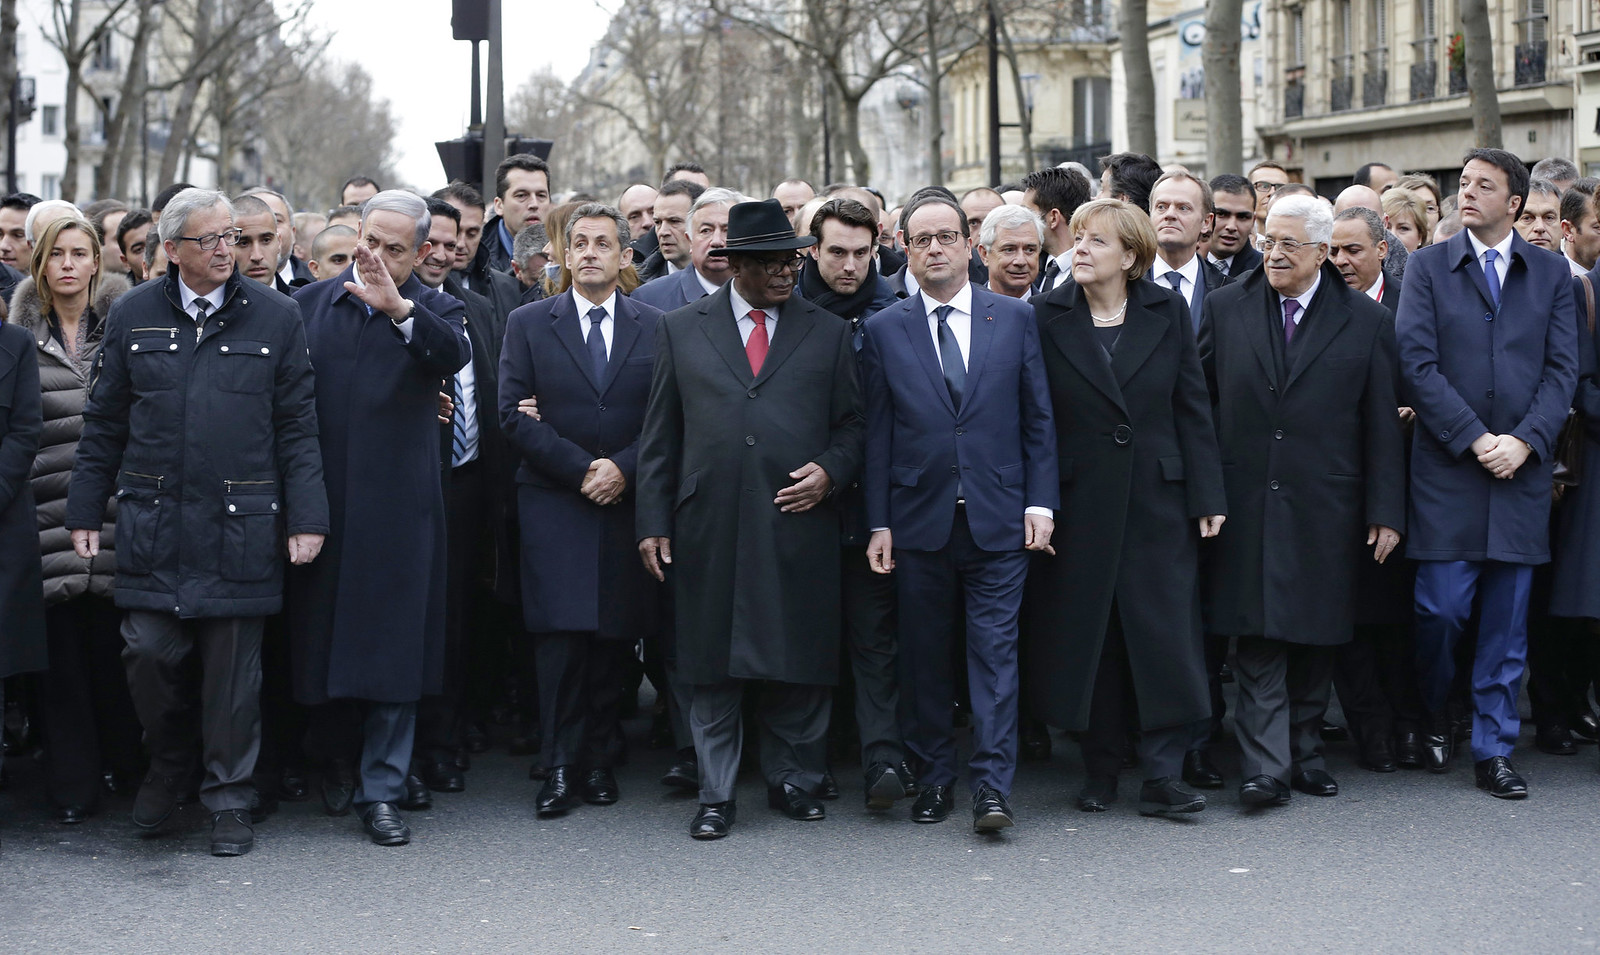 Silent March through Paris in pictures | by European External Action Service - EEAS